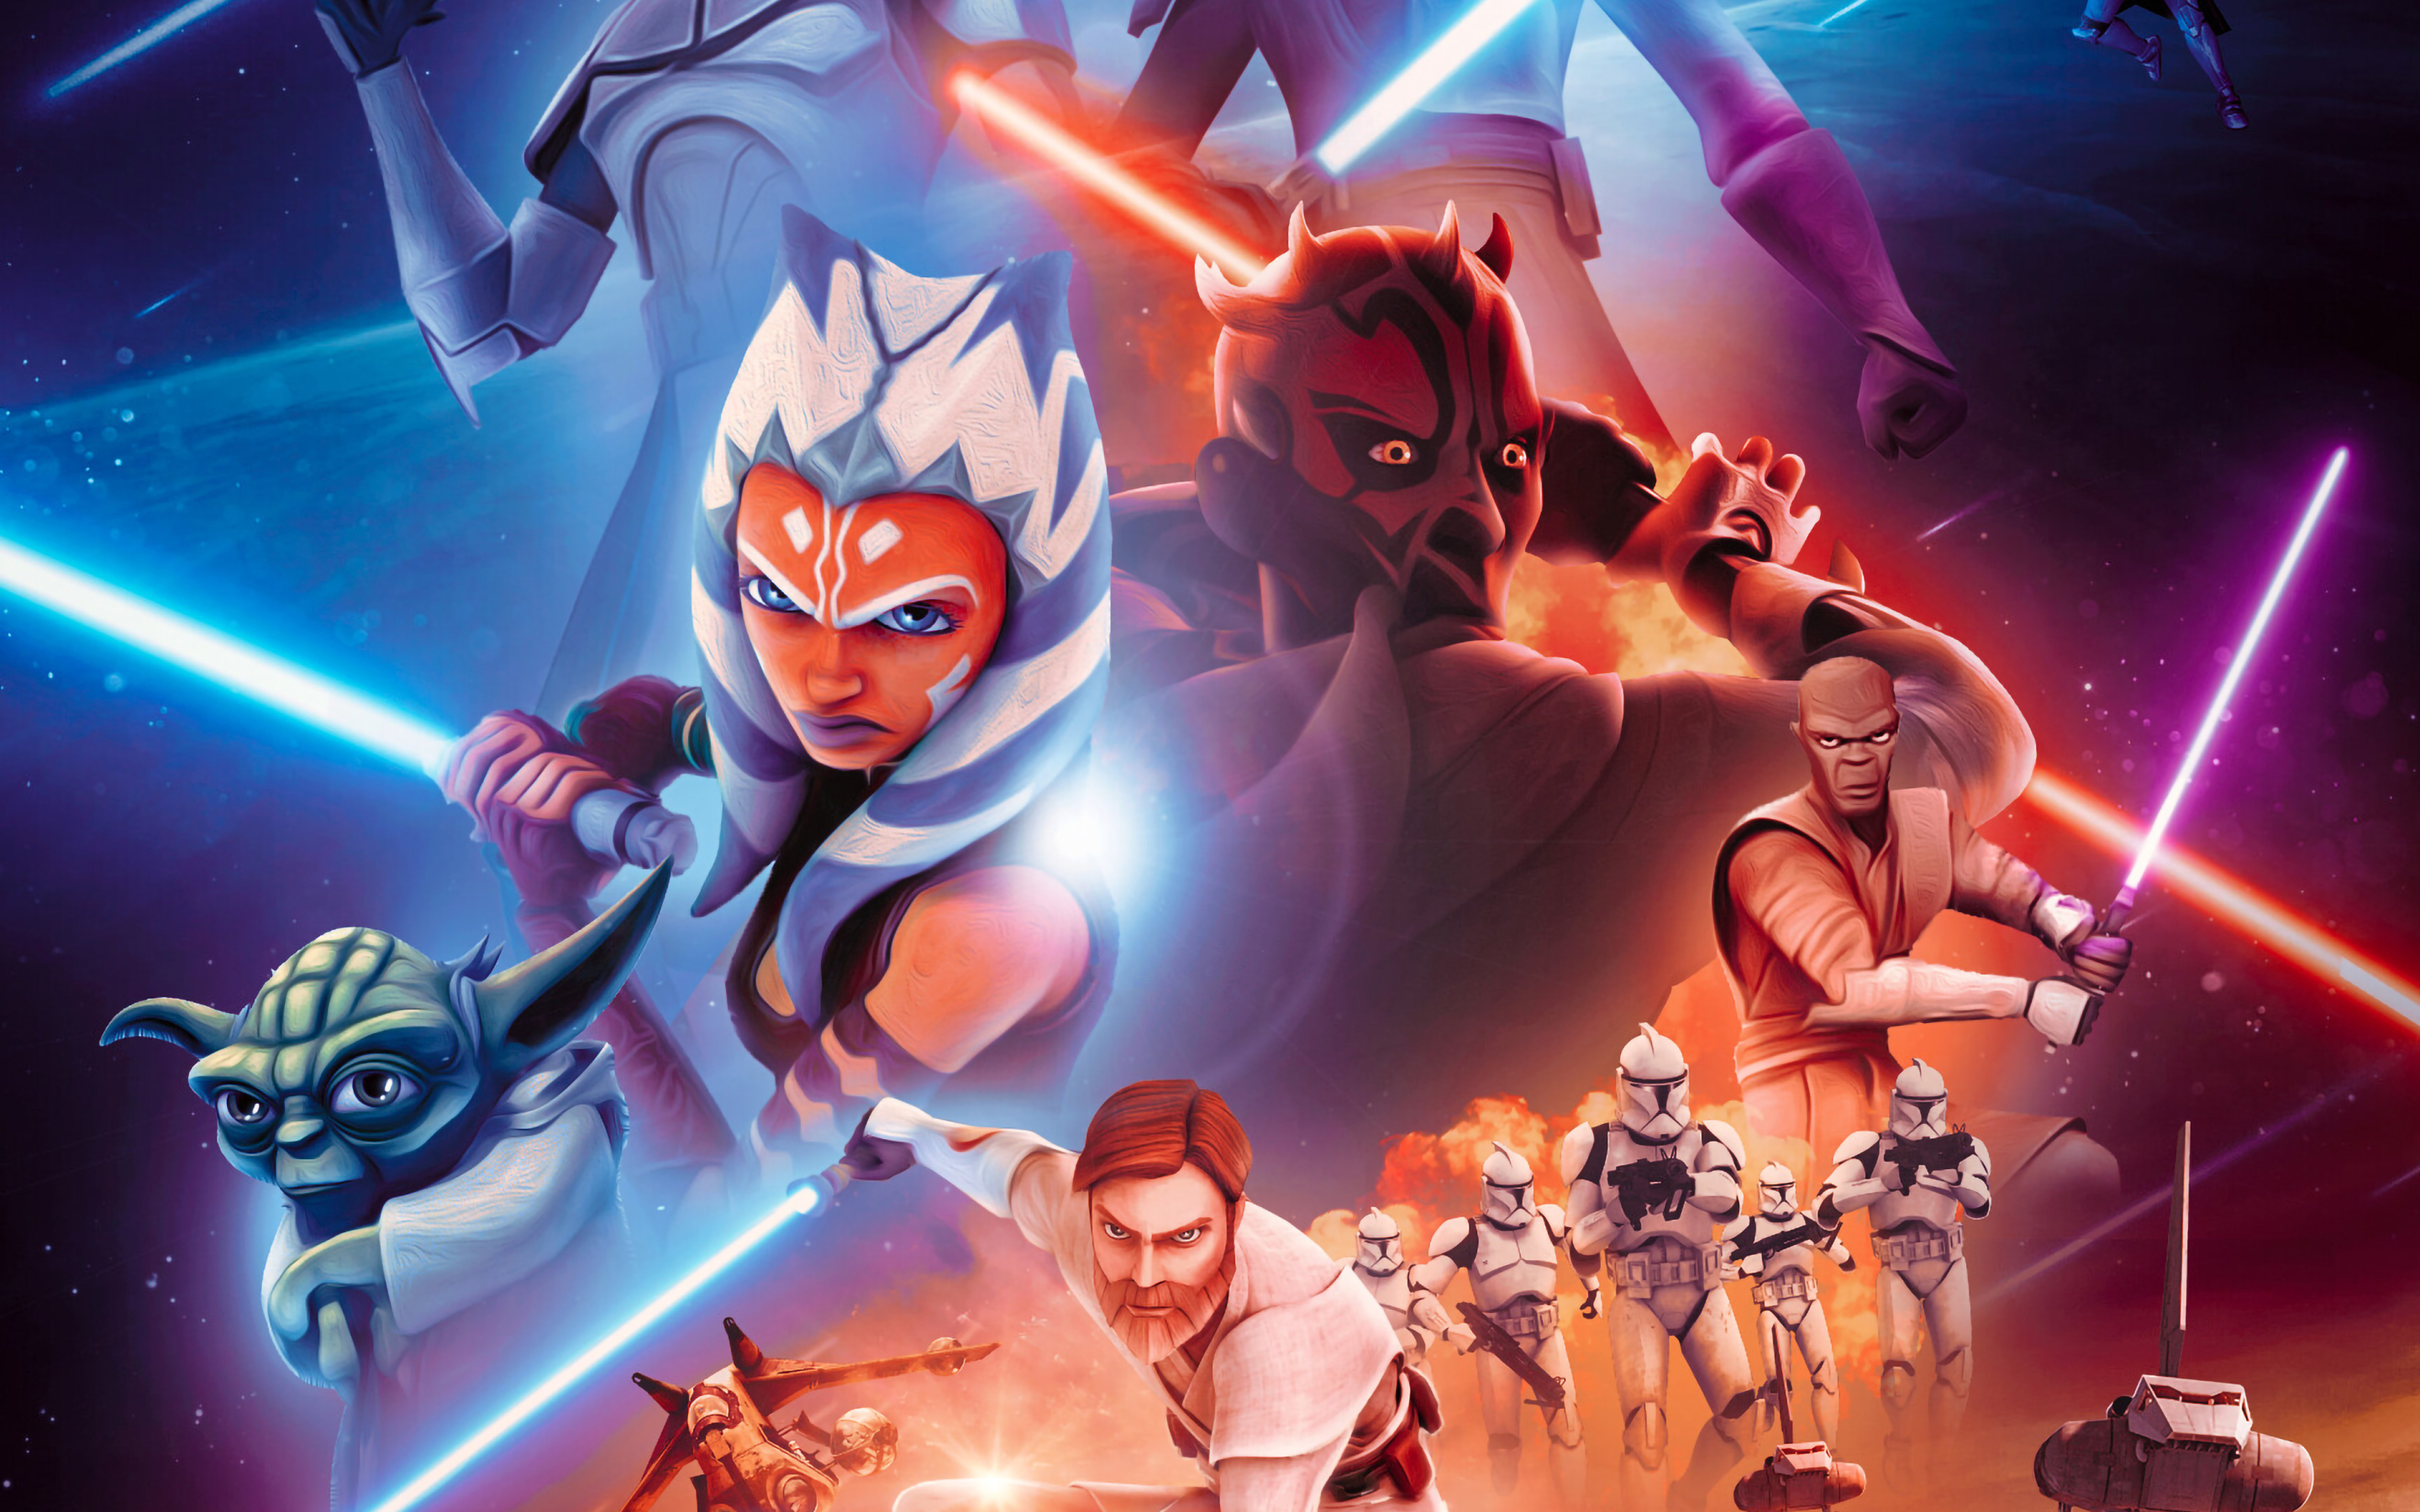 2880x1800 Star Wars The Clone Wars 4k Macbook Pro Retina Wallpaper Hd Tv Series 4k Wallpapers Images Photos And Background Wallpapers Den